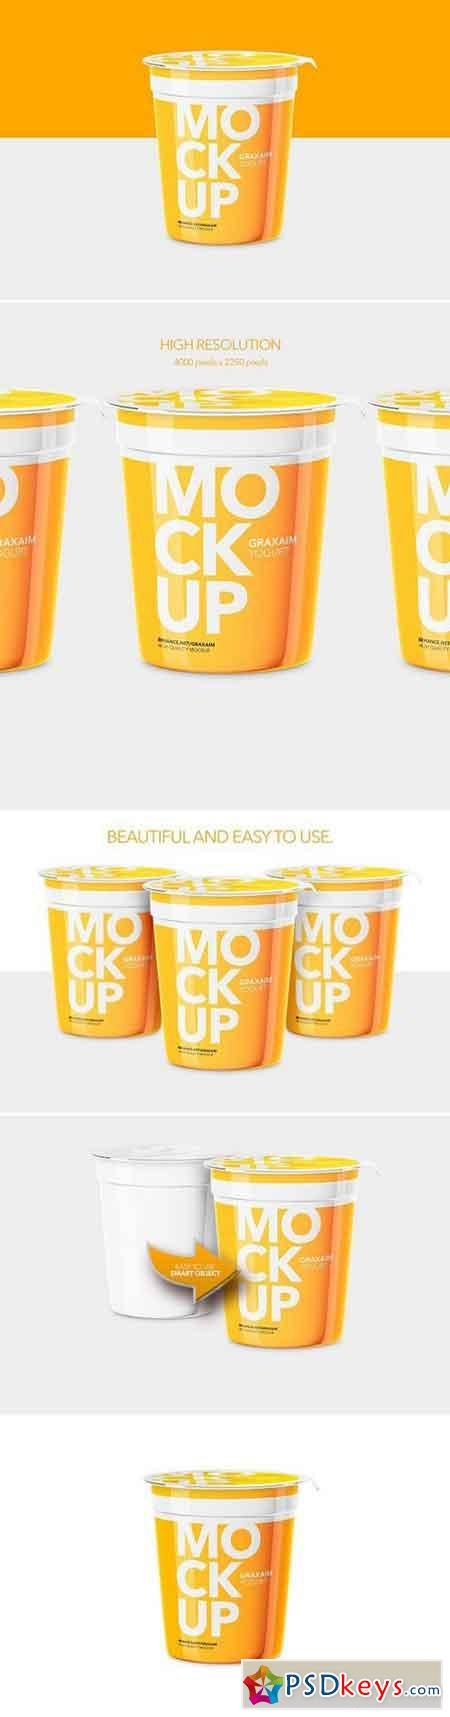 Yogurt Cup - High Angle - Mockup 1080065